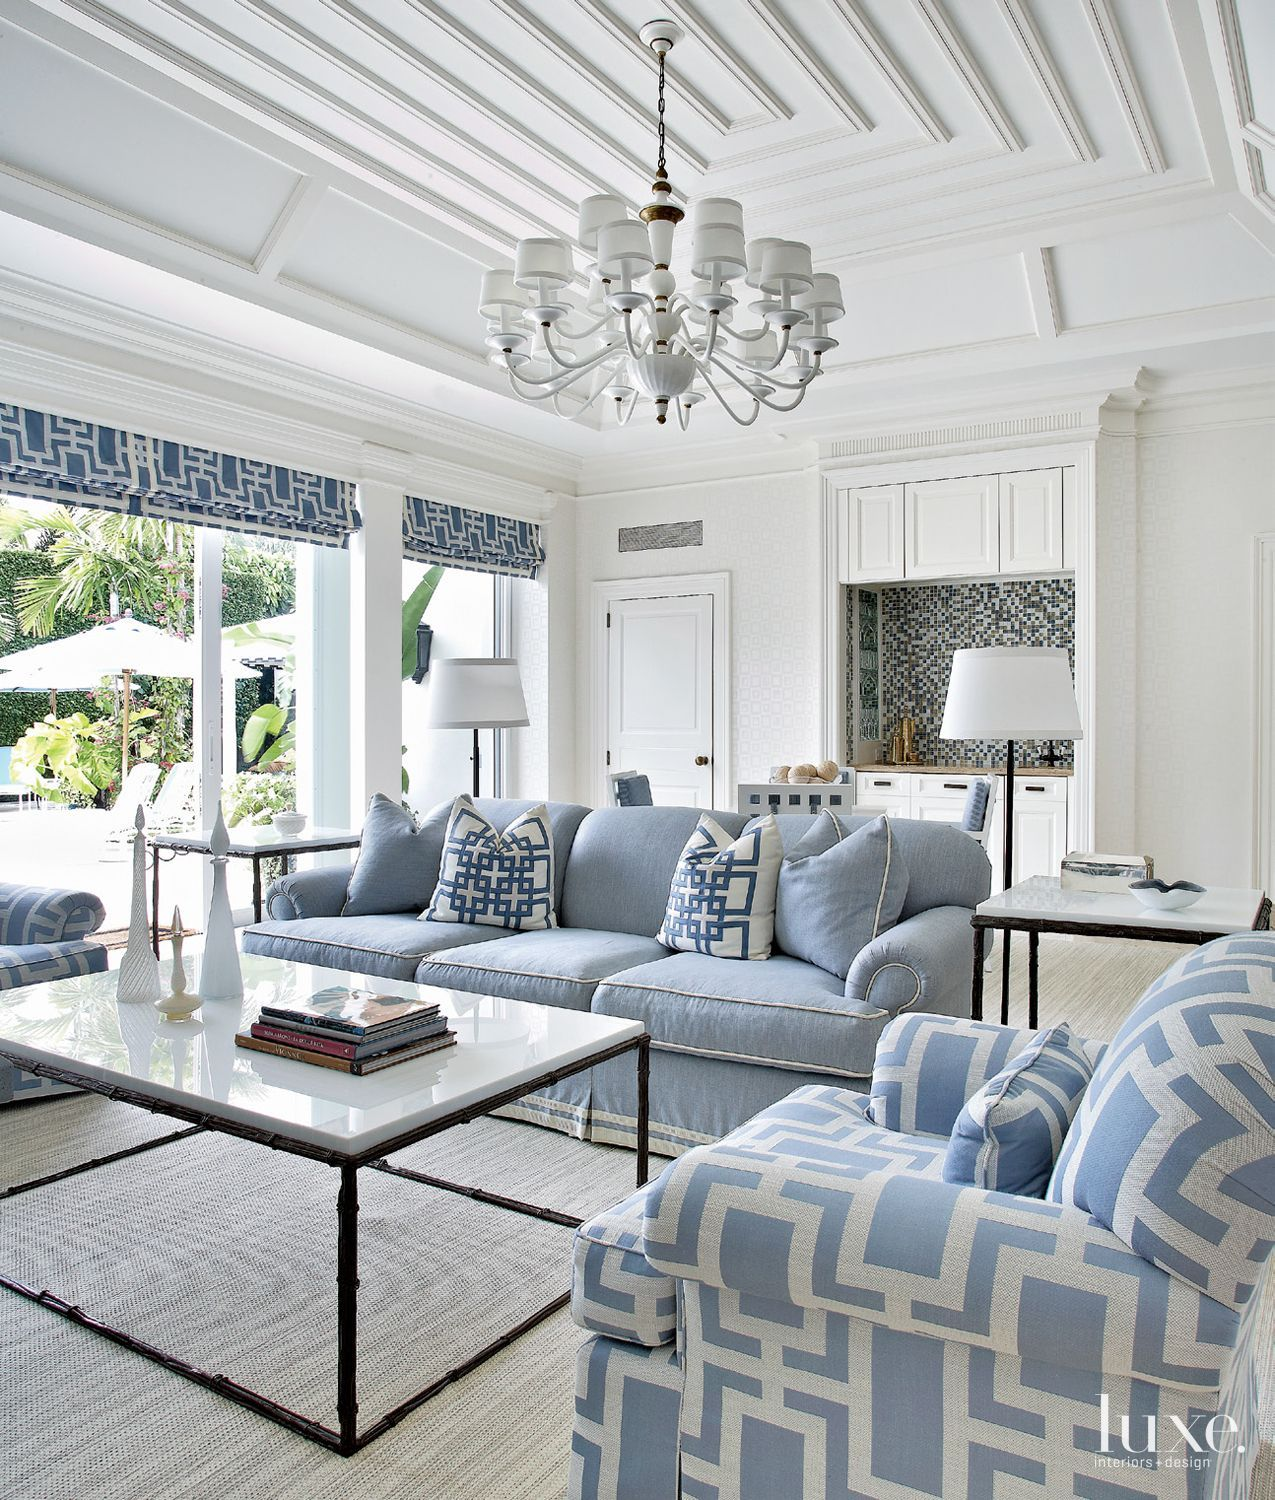 Blue and white pool house fridays favourites gallerie b for more inspirations visit